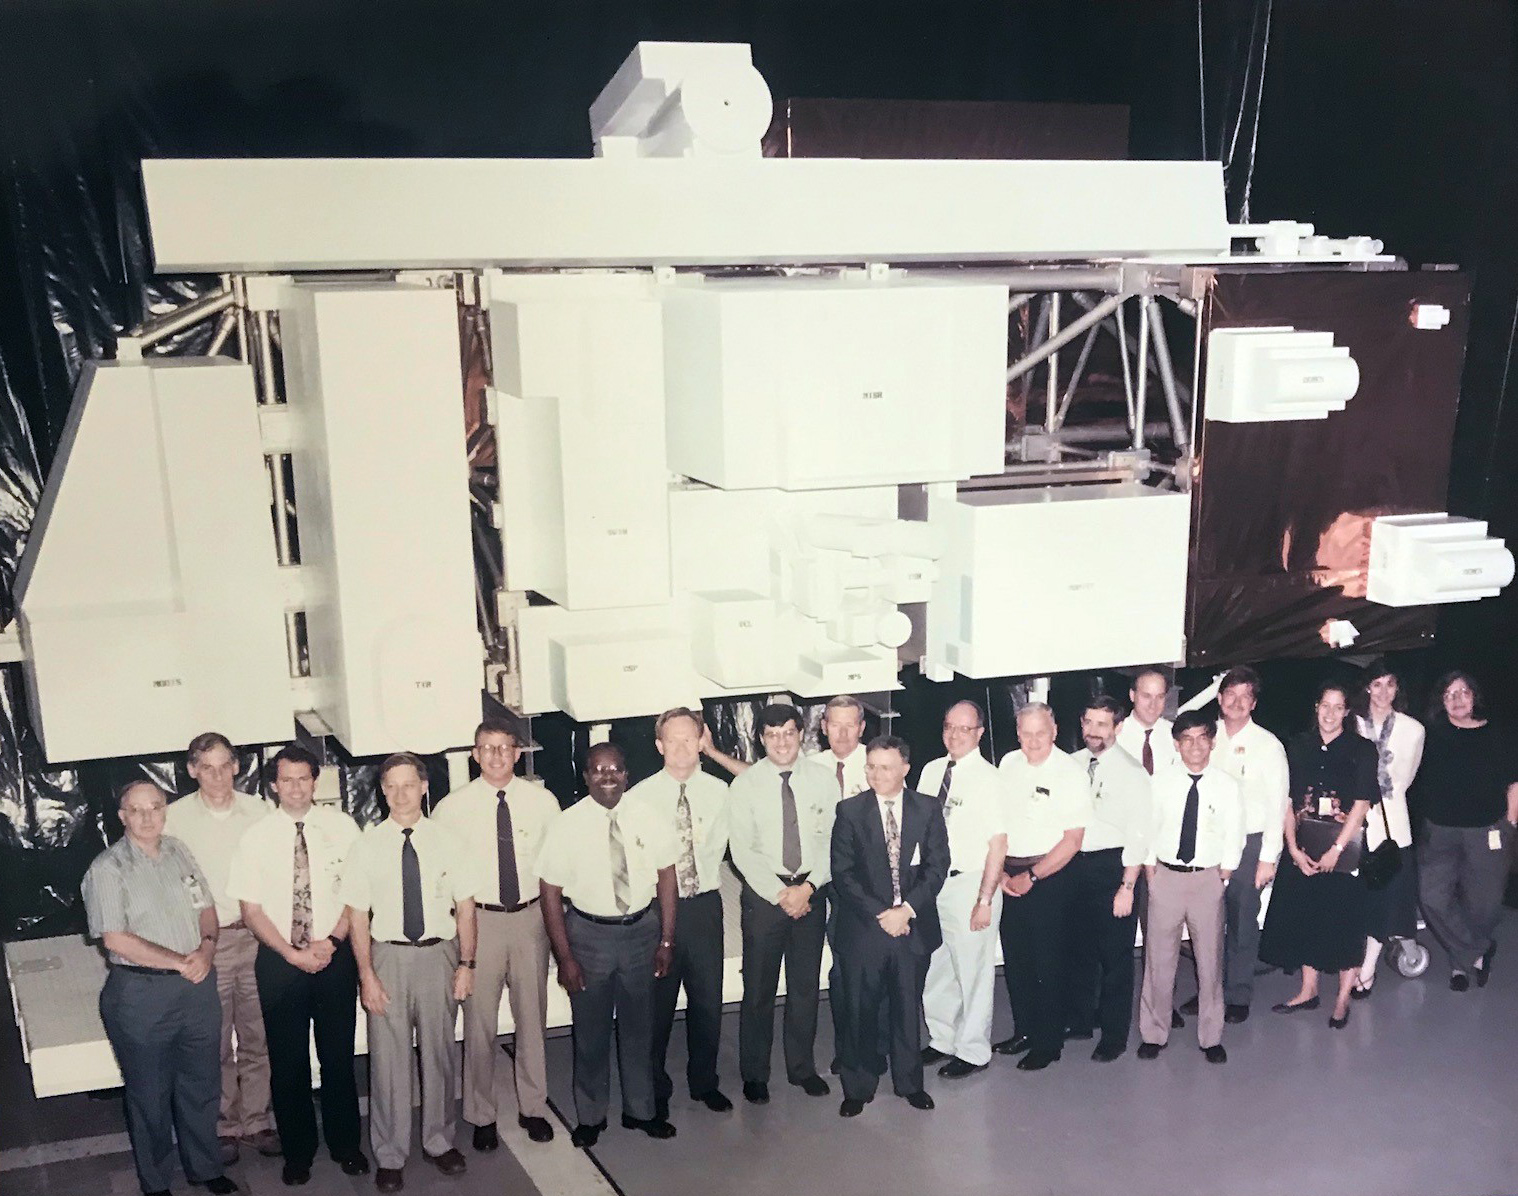 NASA scientists, engineers and designers pose for a group photo in front of the Terra model.